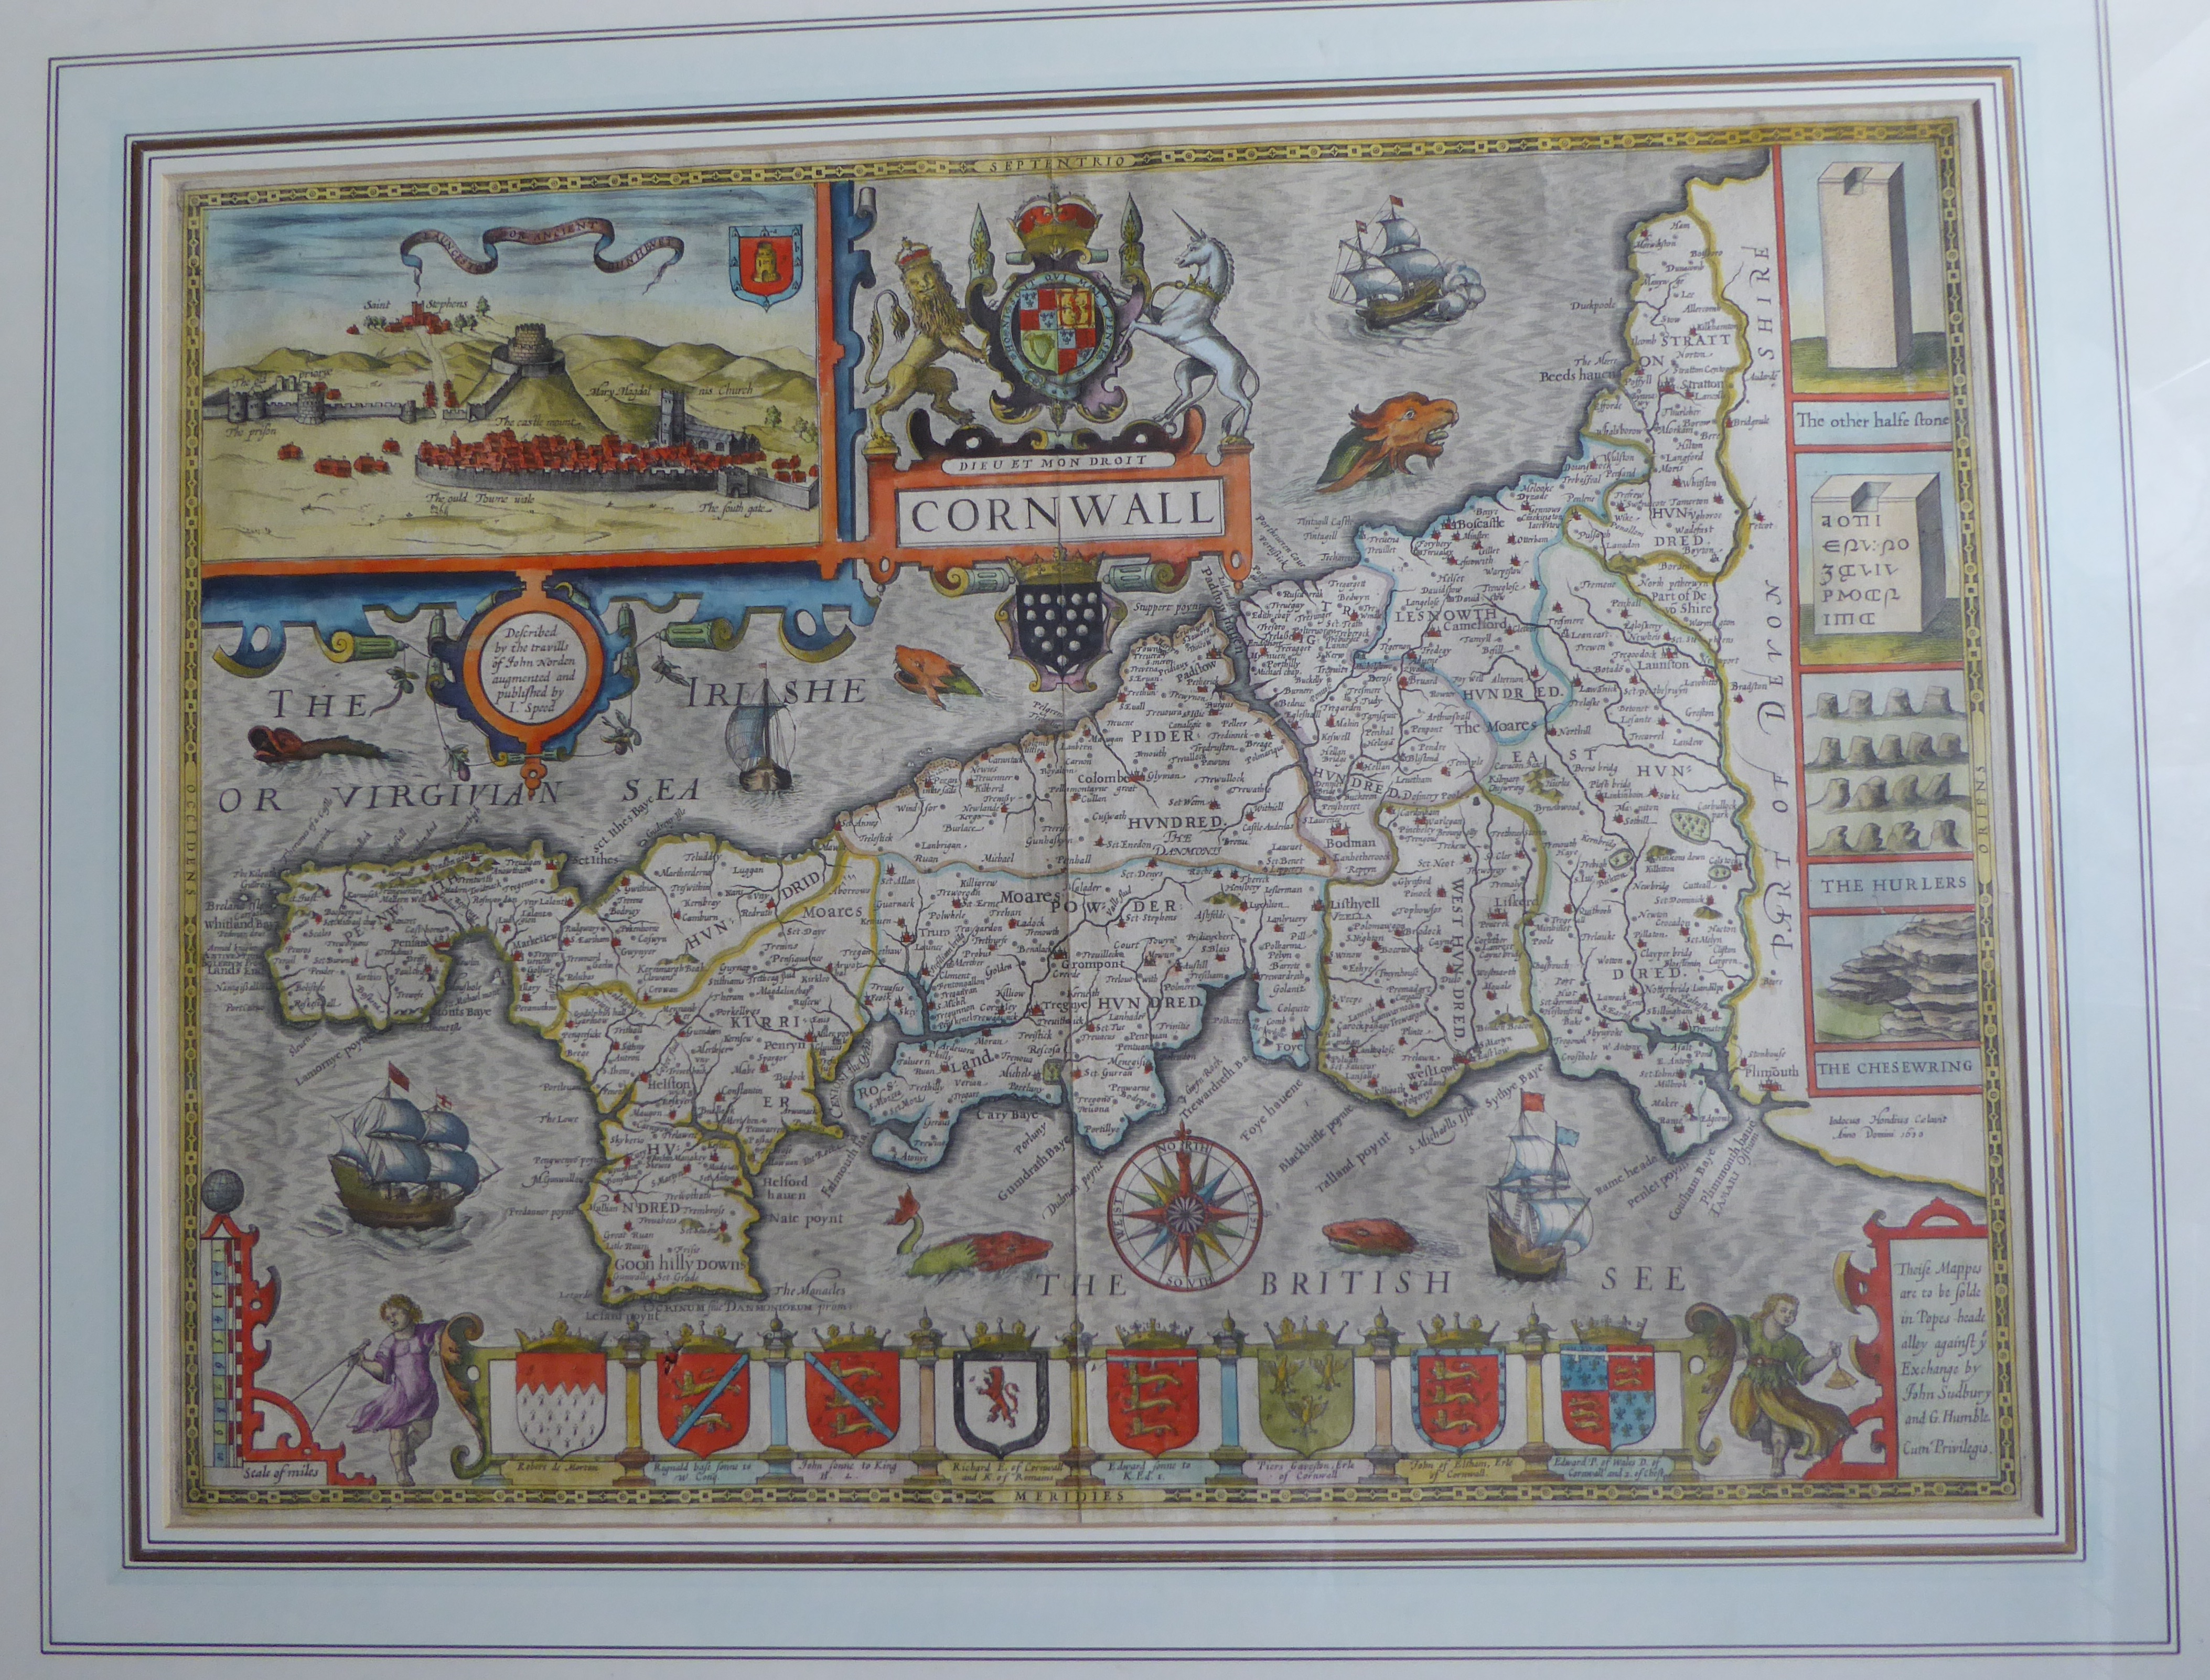 Lot 38 - A C17th hand coloured copper engraved map of Cornwall 1627 by John Speed